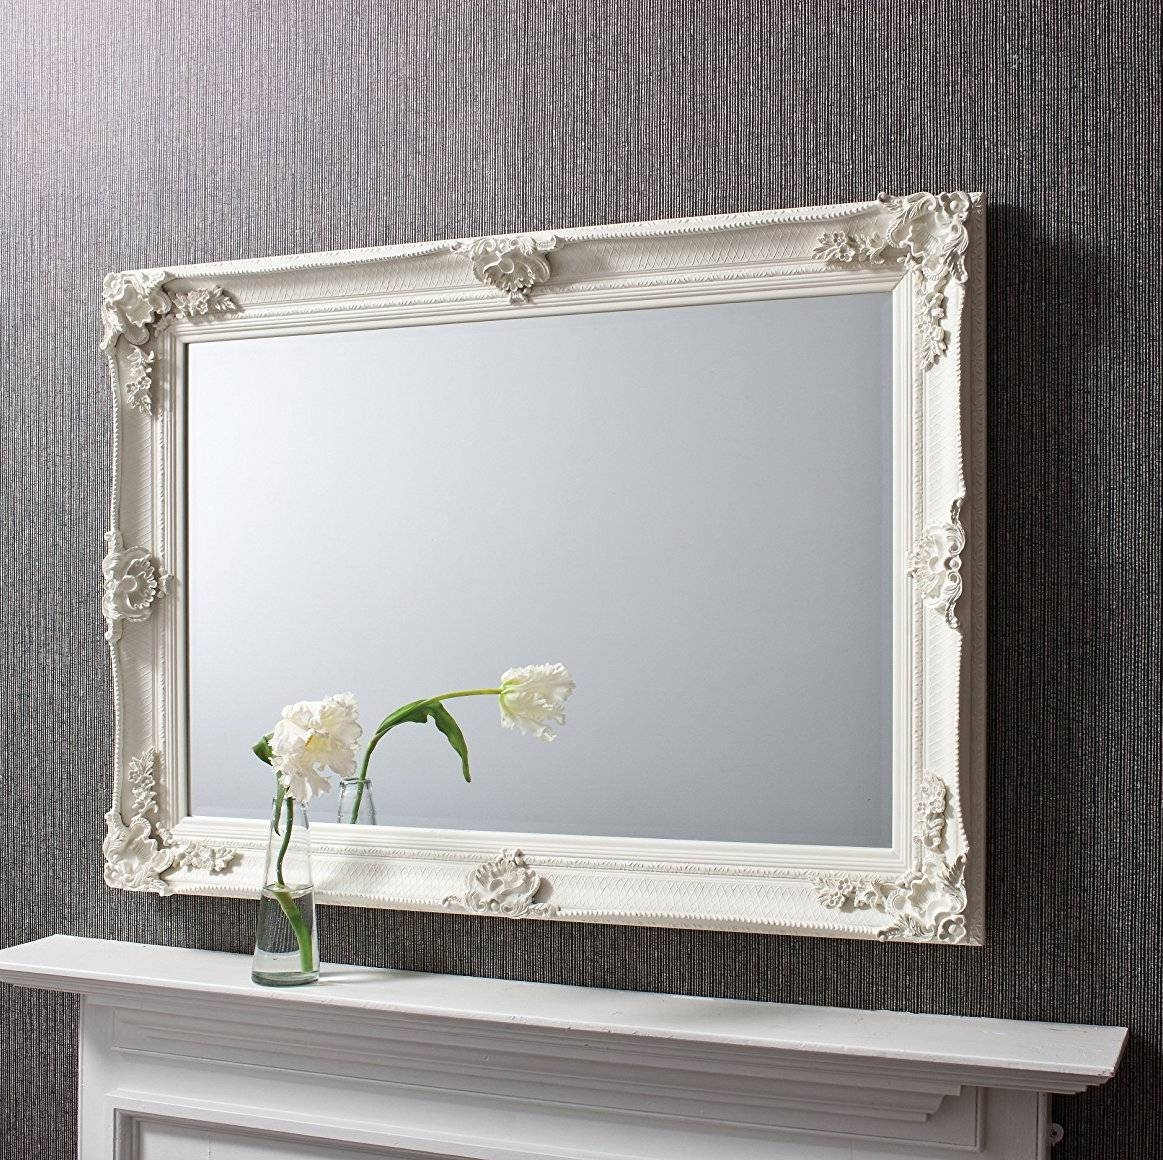 Decorative Mirrors | Exclusive Mirrors inside Shabby Chic Cream Mirrors (Image 10 of 25)